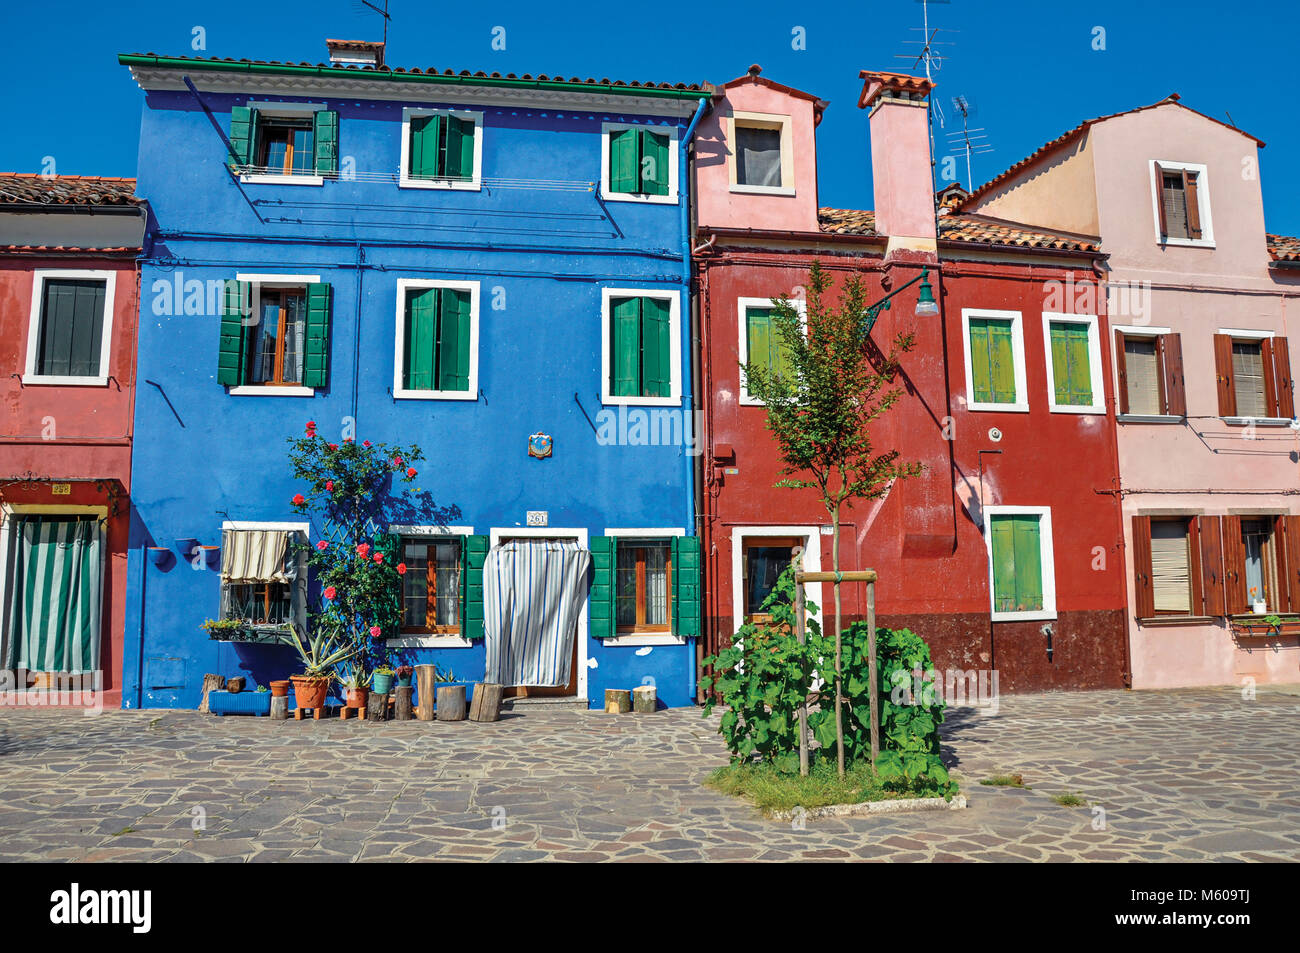 Burano, Italy - May 08, 2013. Overview of colorful terraced houses on sunny day in Burano, a gracious little town Stock Photo